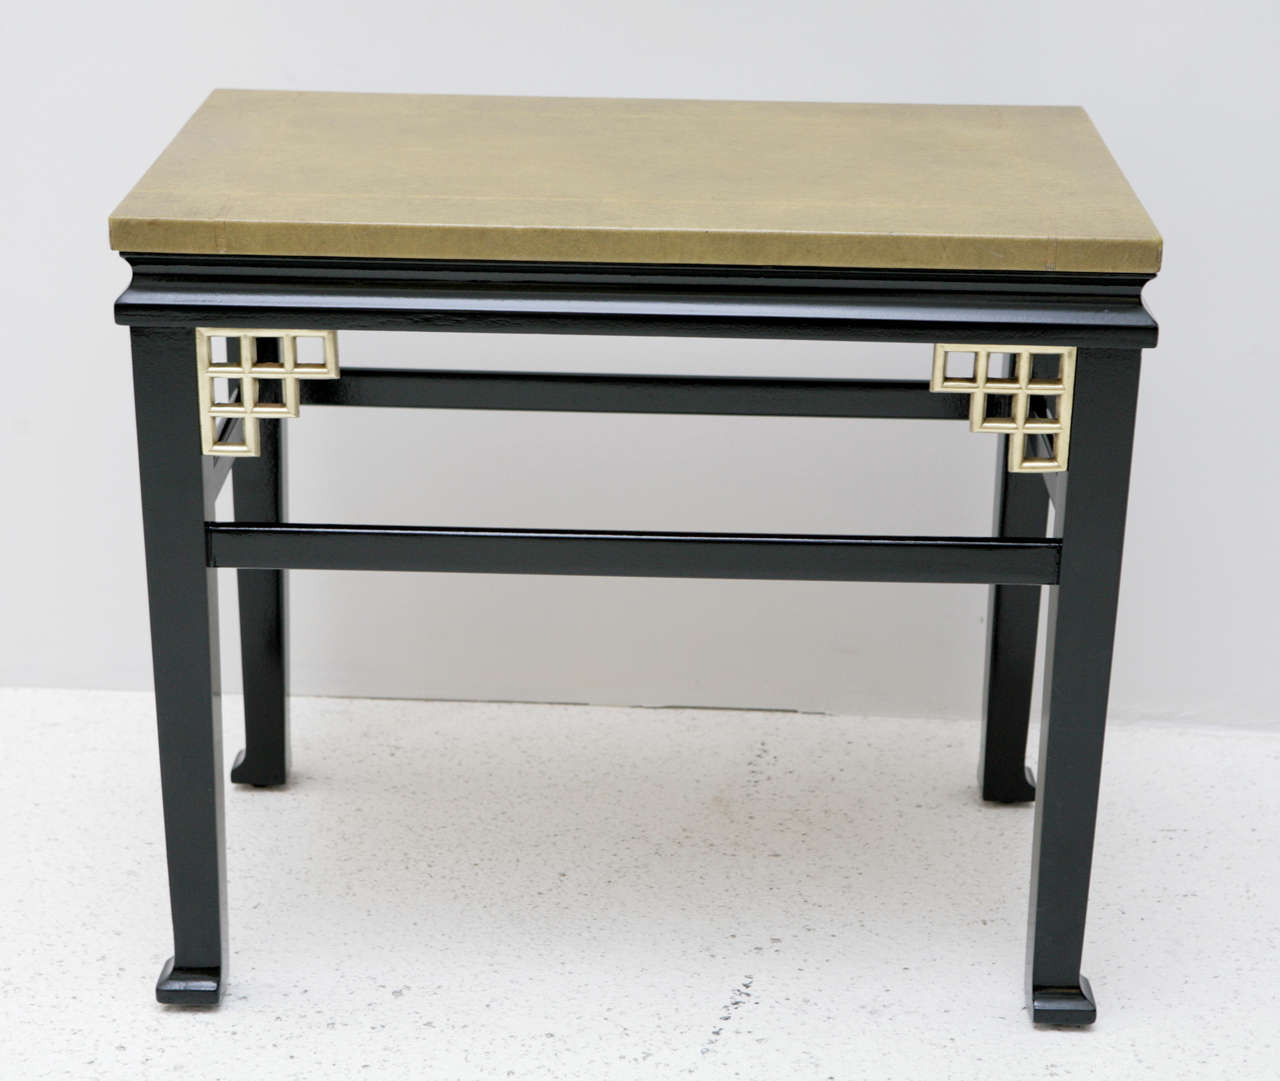 A pair of custom side tables with gold greek key embossed leather tops and satin finished black bases accented with brass fretwork details in the corners. These tables are most certainly custom work based on the construction and quality, it is